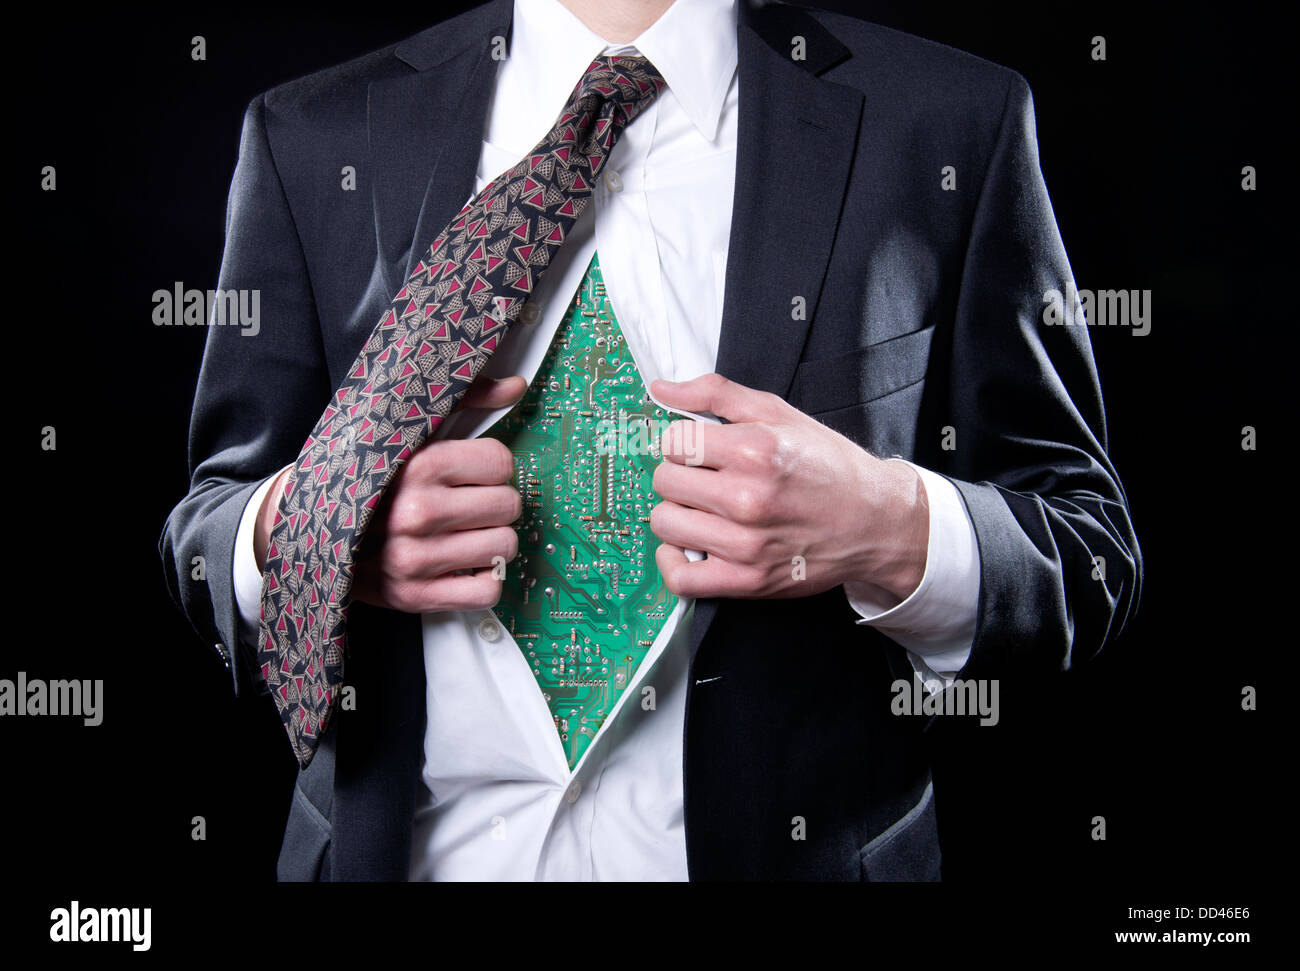 Concept photo for the bionic businessman showing a computer circuit board under the executive's shirt - Stock Image